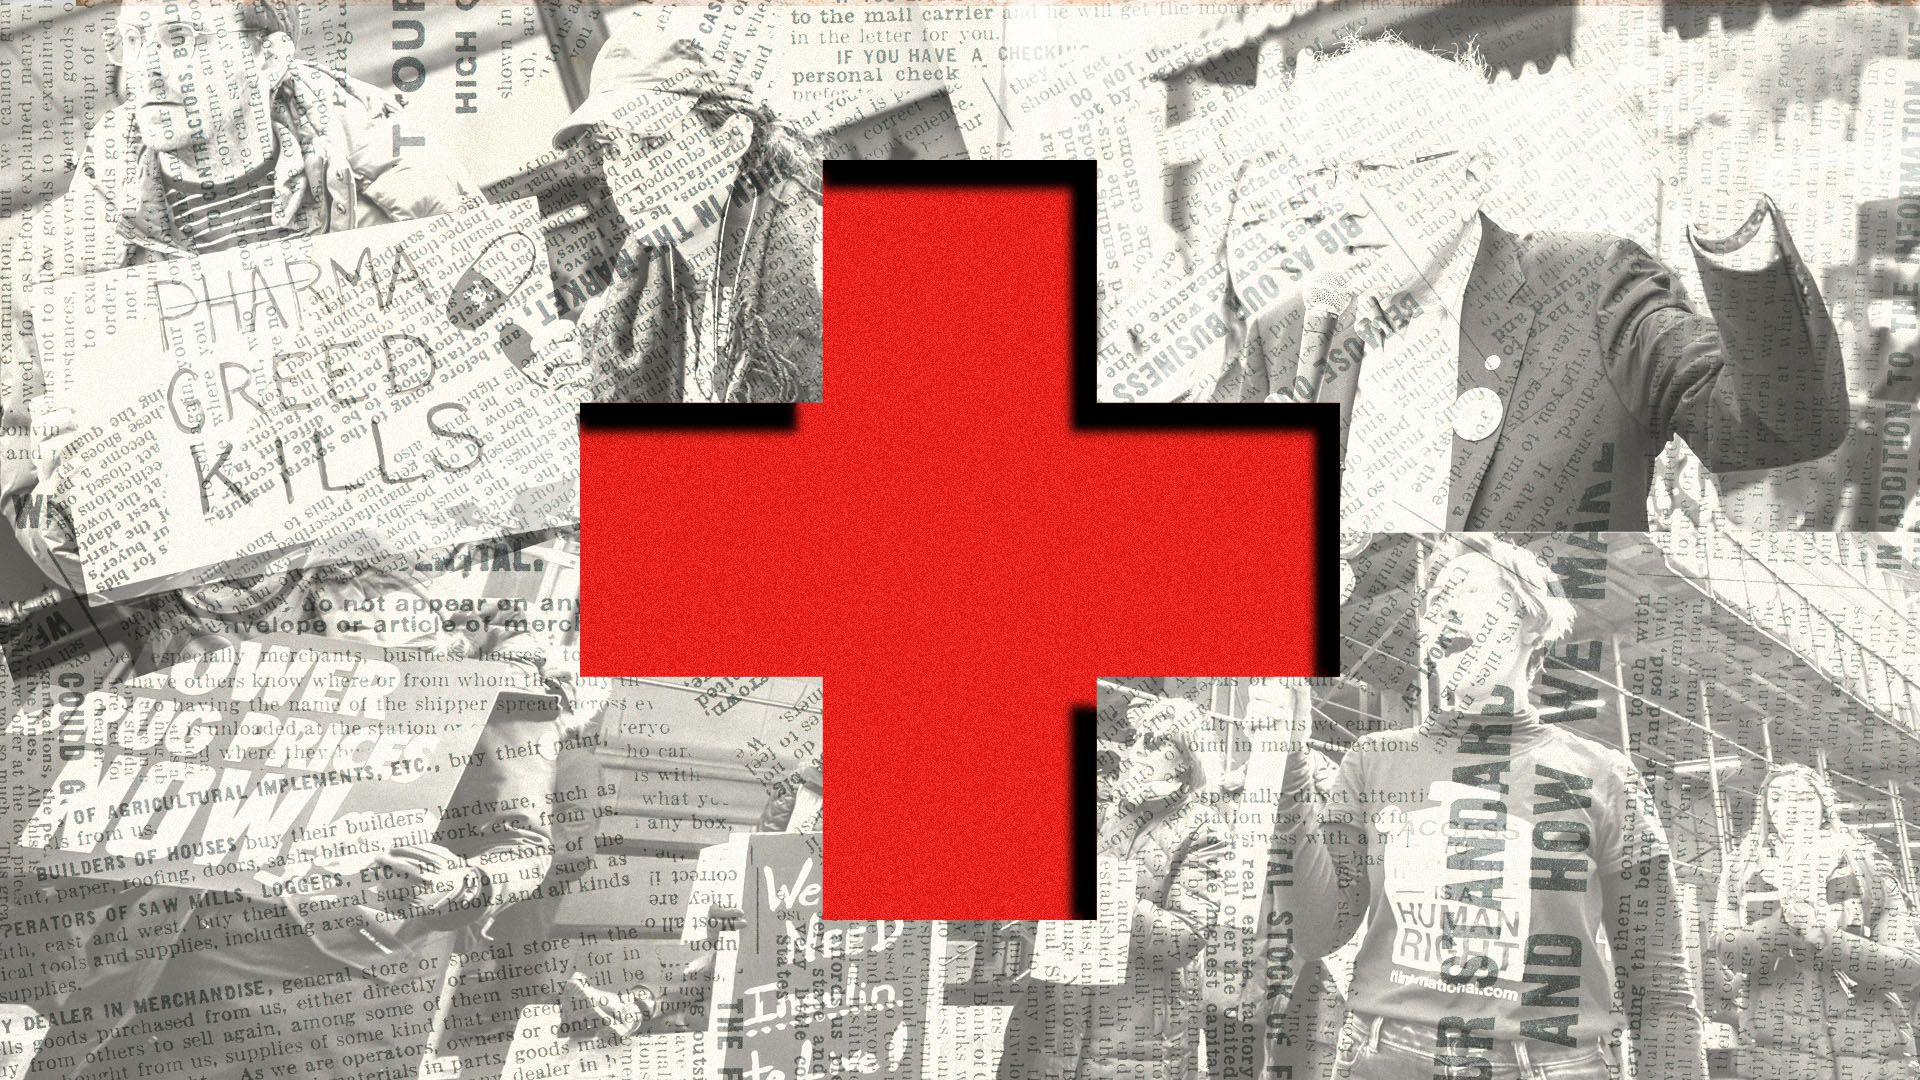 Photo illustration of people protesting health care costs and Democratic presidential candidate Bernie Sanders talking about the cost of insulin in the USA versus Canada, overlaid with a red cross